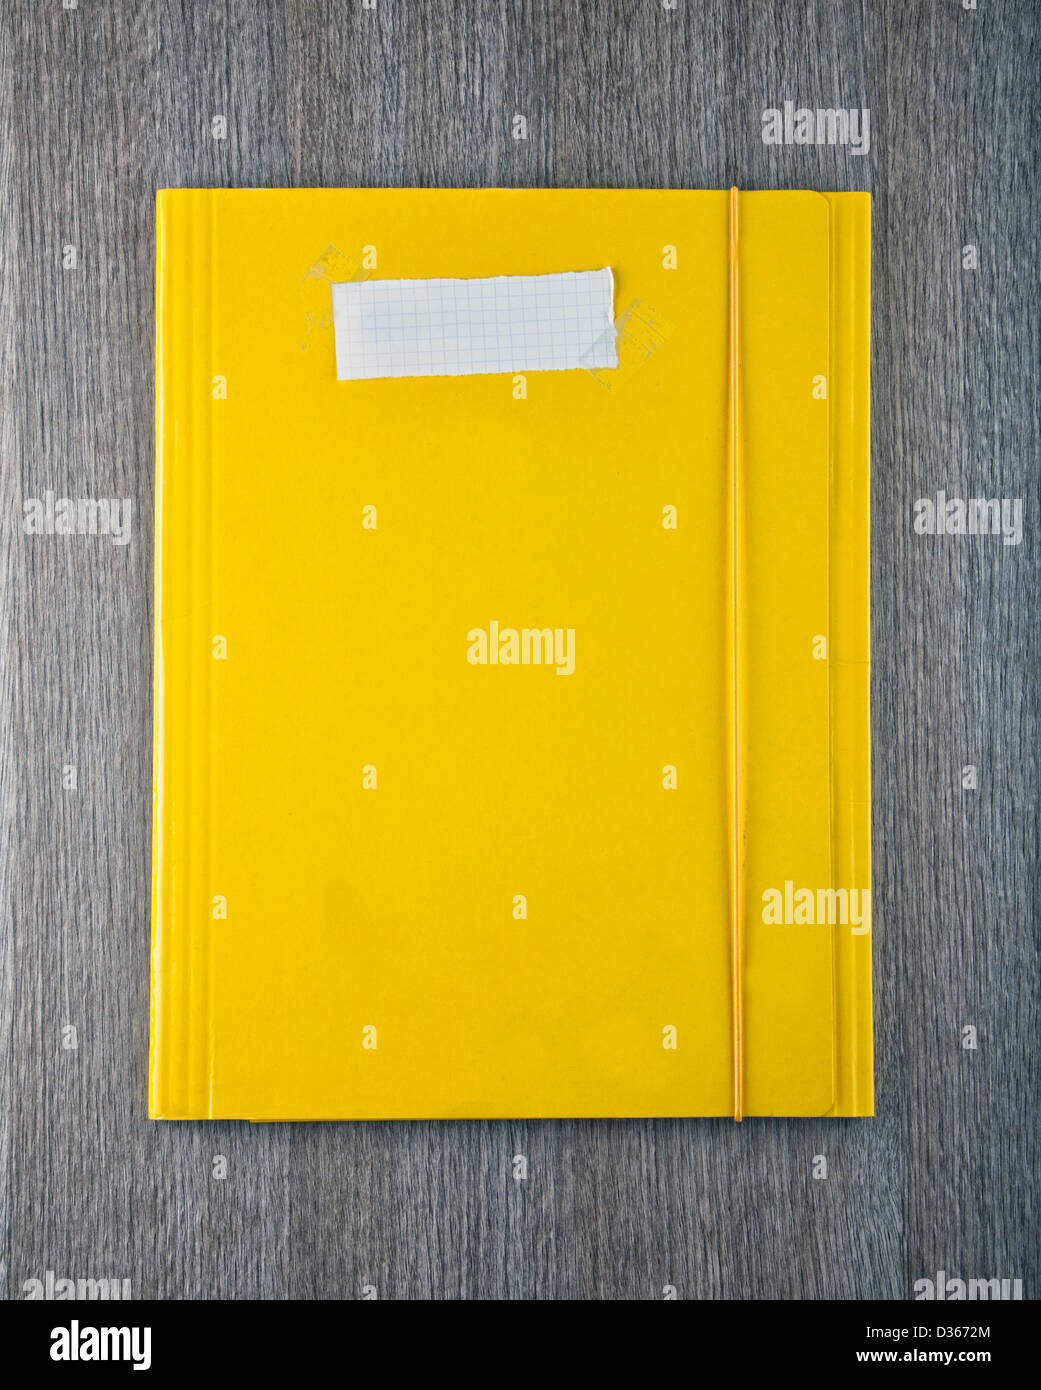 A yellow folder with empty white paper label - Stock Image